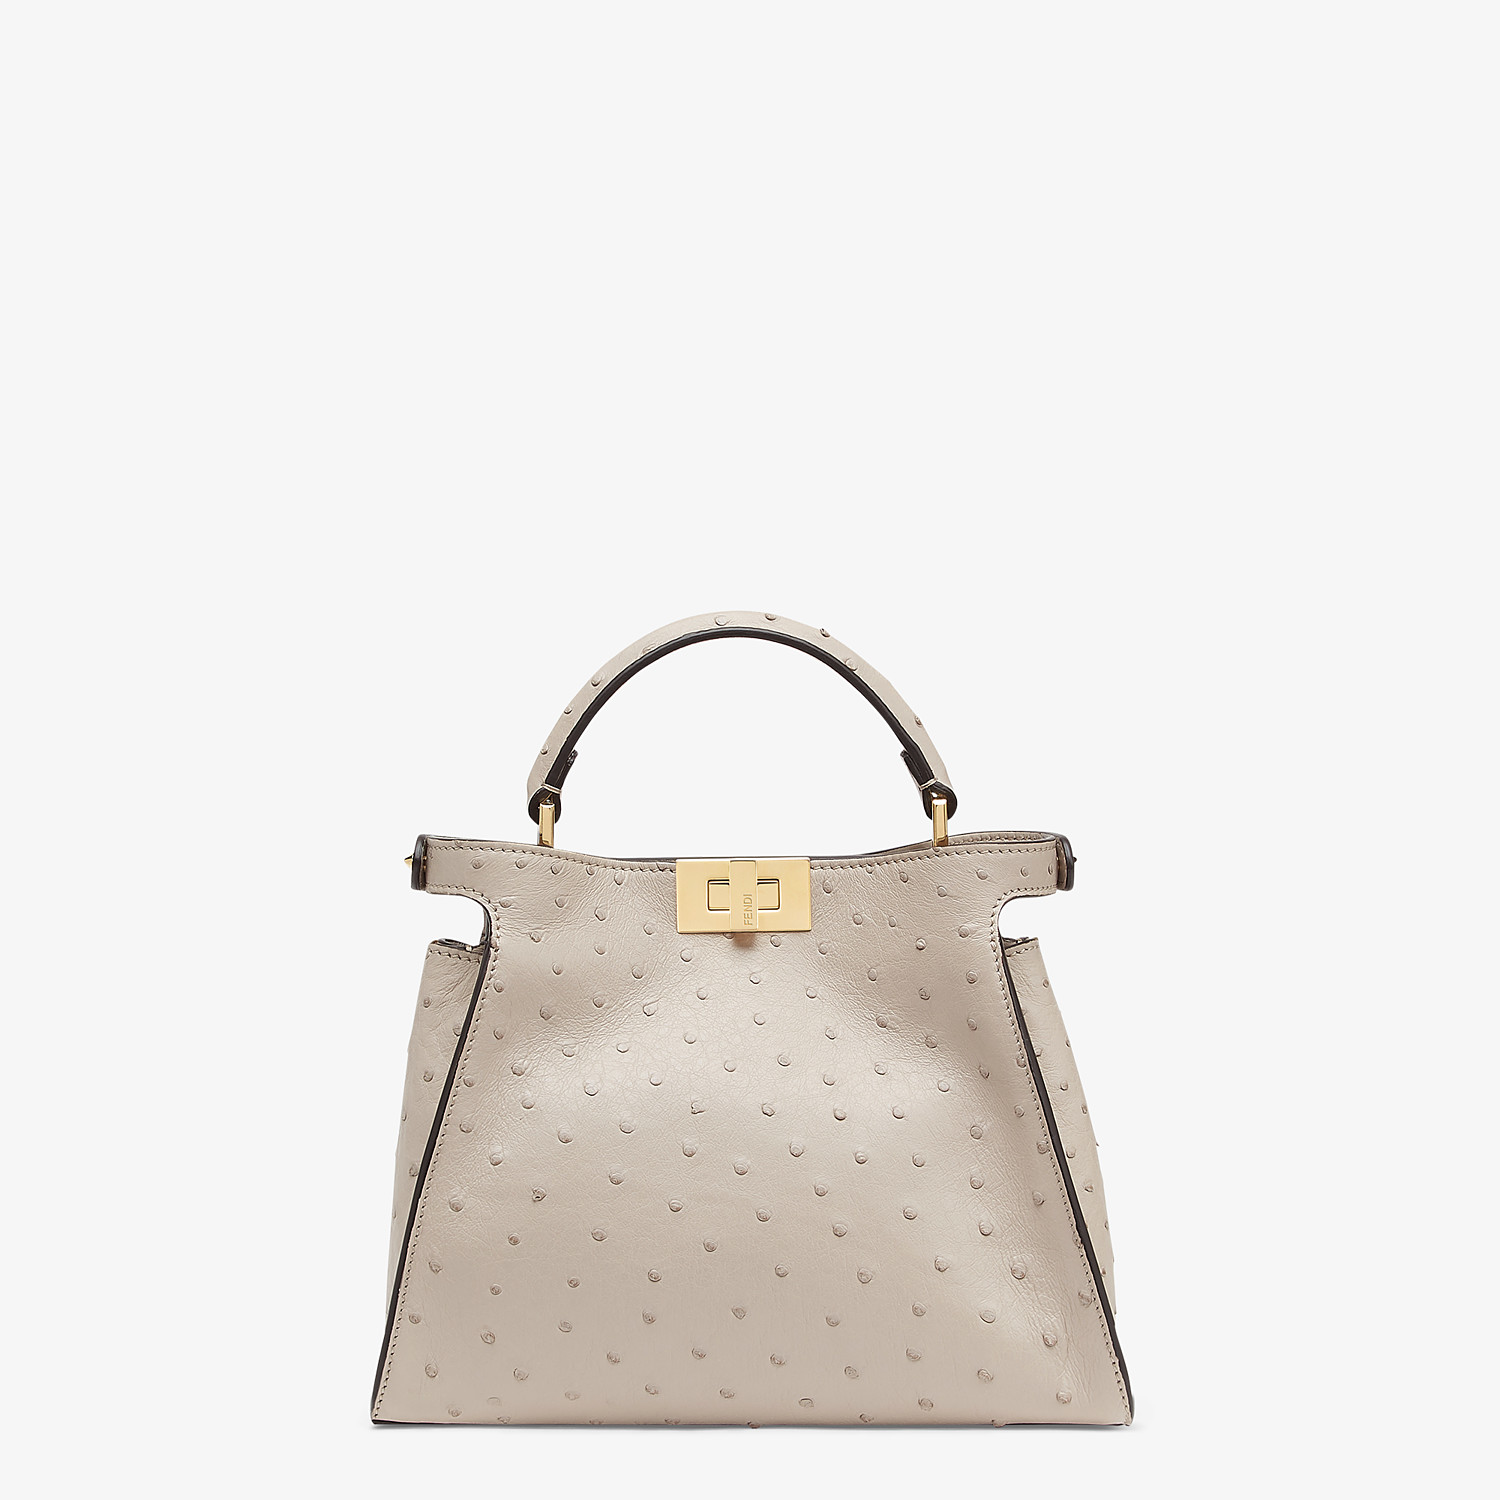 FENDI PEEKABOO ICONIC ESSENTIALLY - Gray ostrich leather bag - view 4 detail